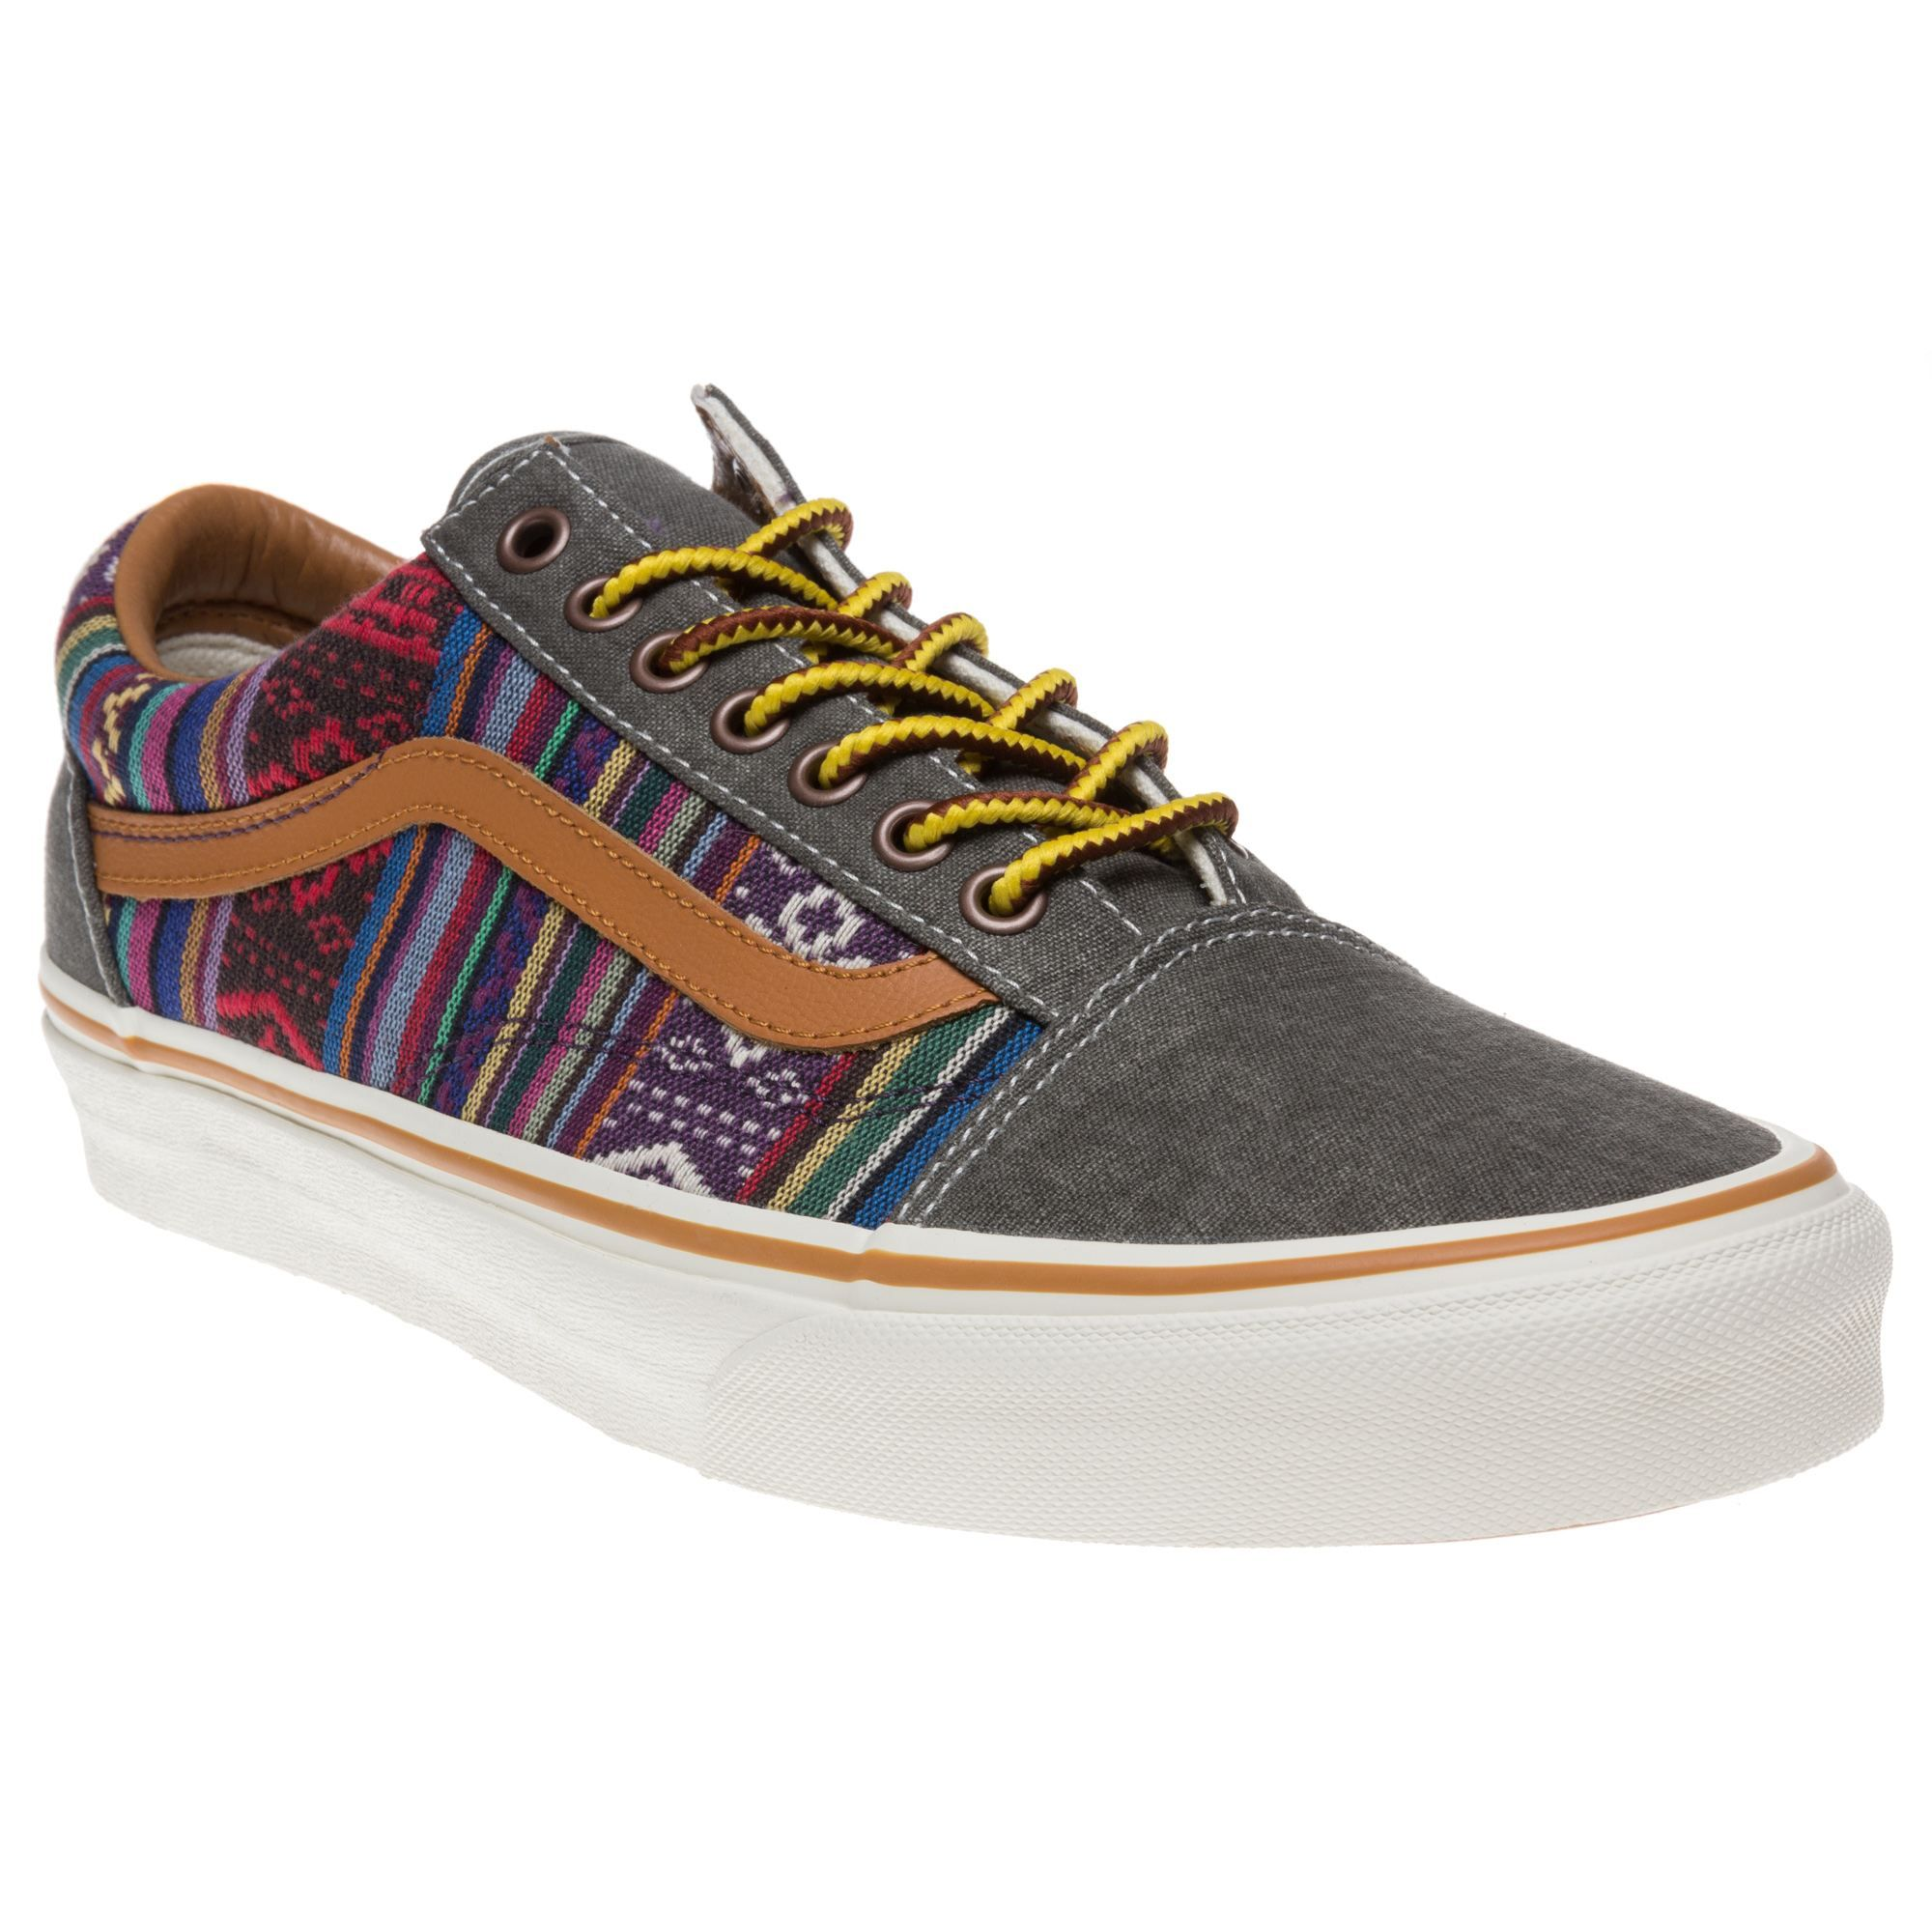 8ecf4985e9 Vans Old Skool Trainers in aztec colourful print.